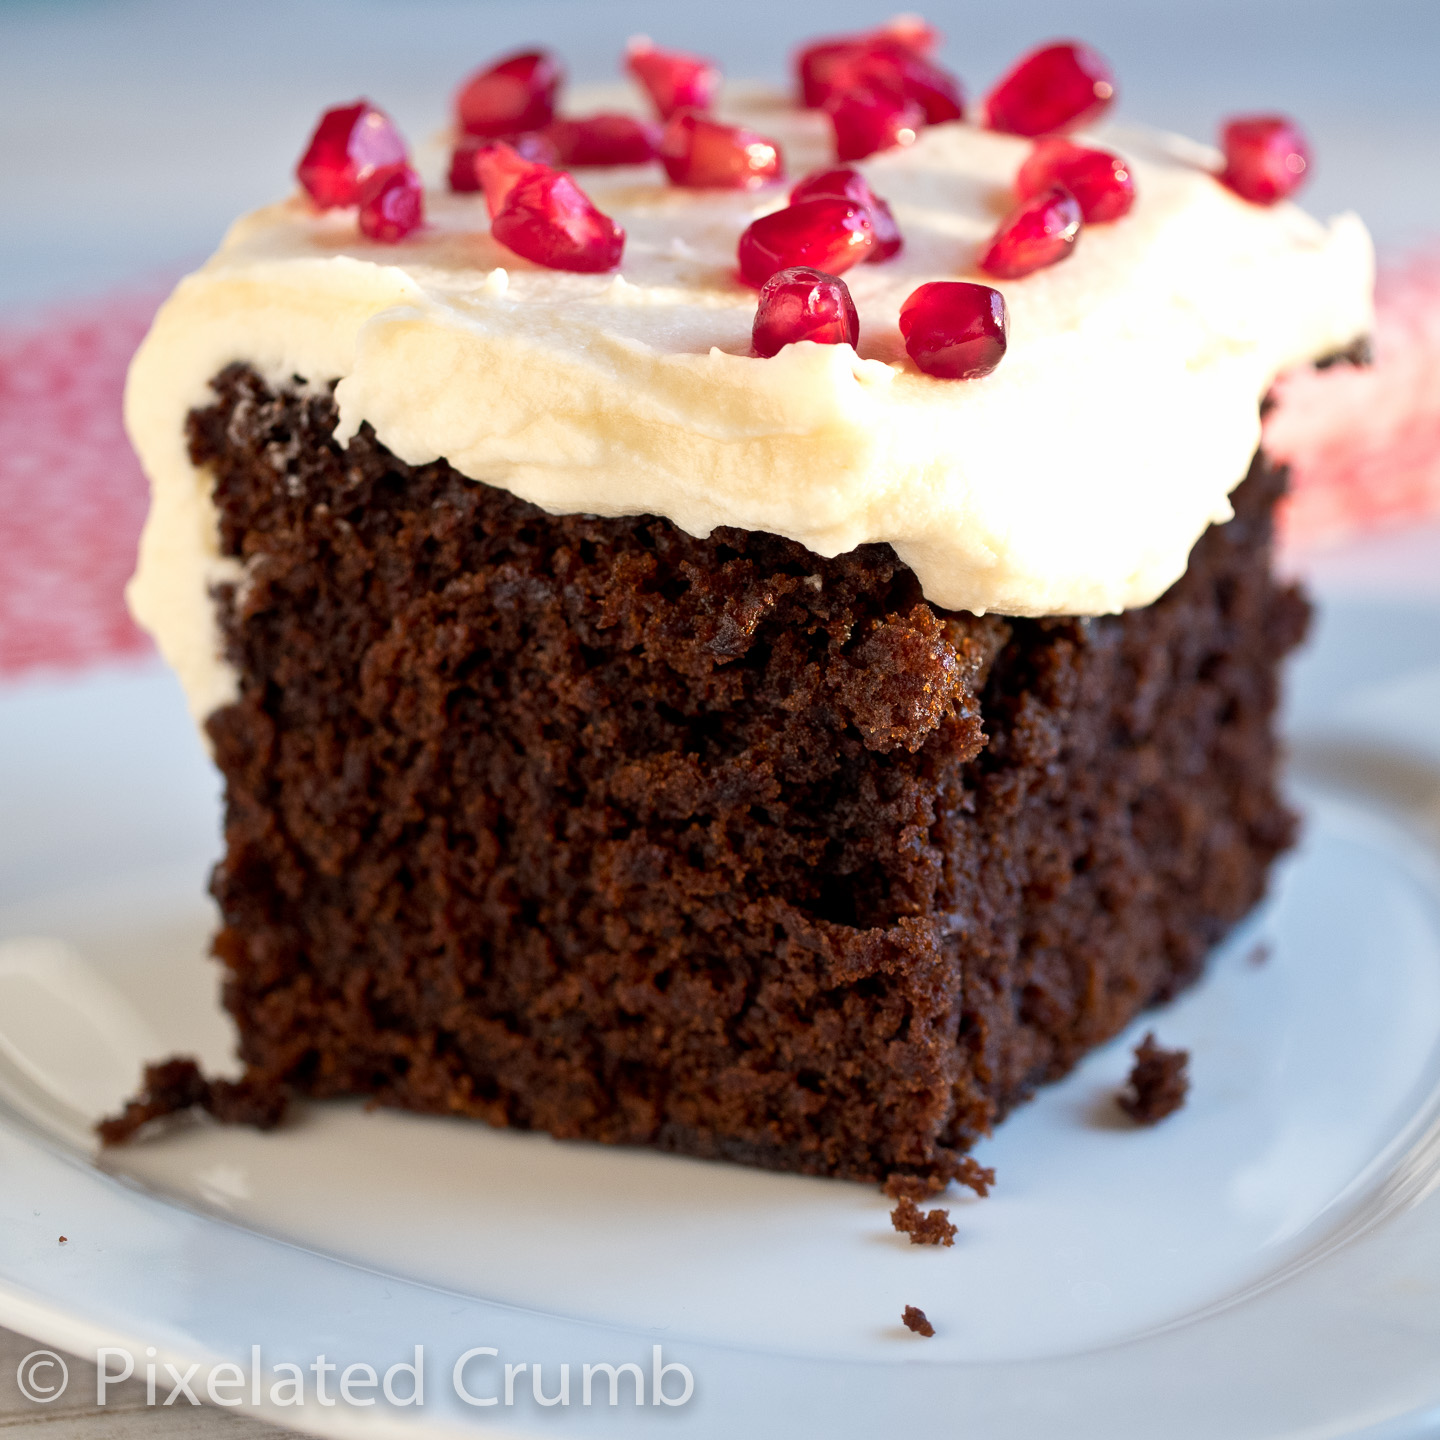 Orange Gingerbread with Cream Cheese Frosting and Pomegranate Seeds